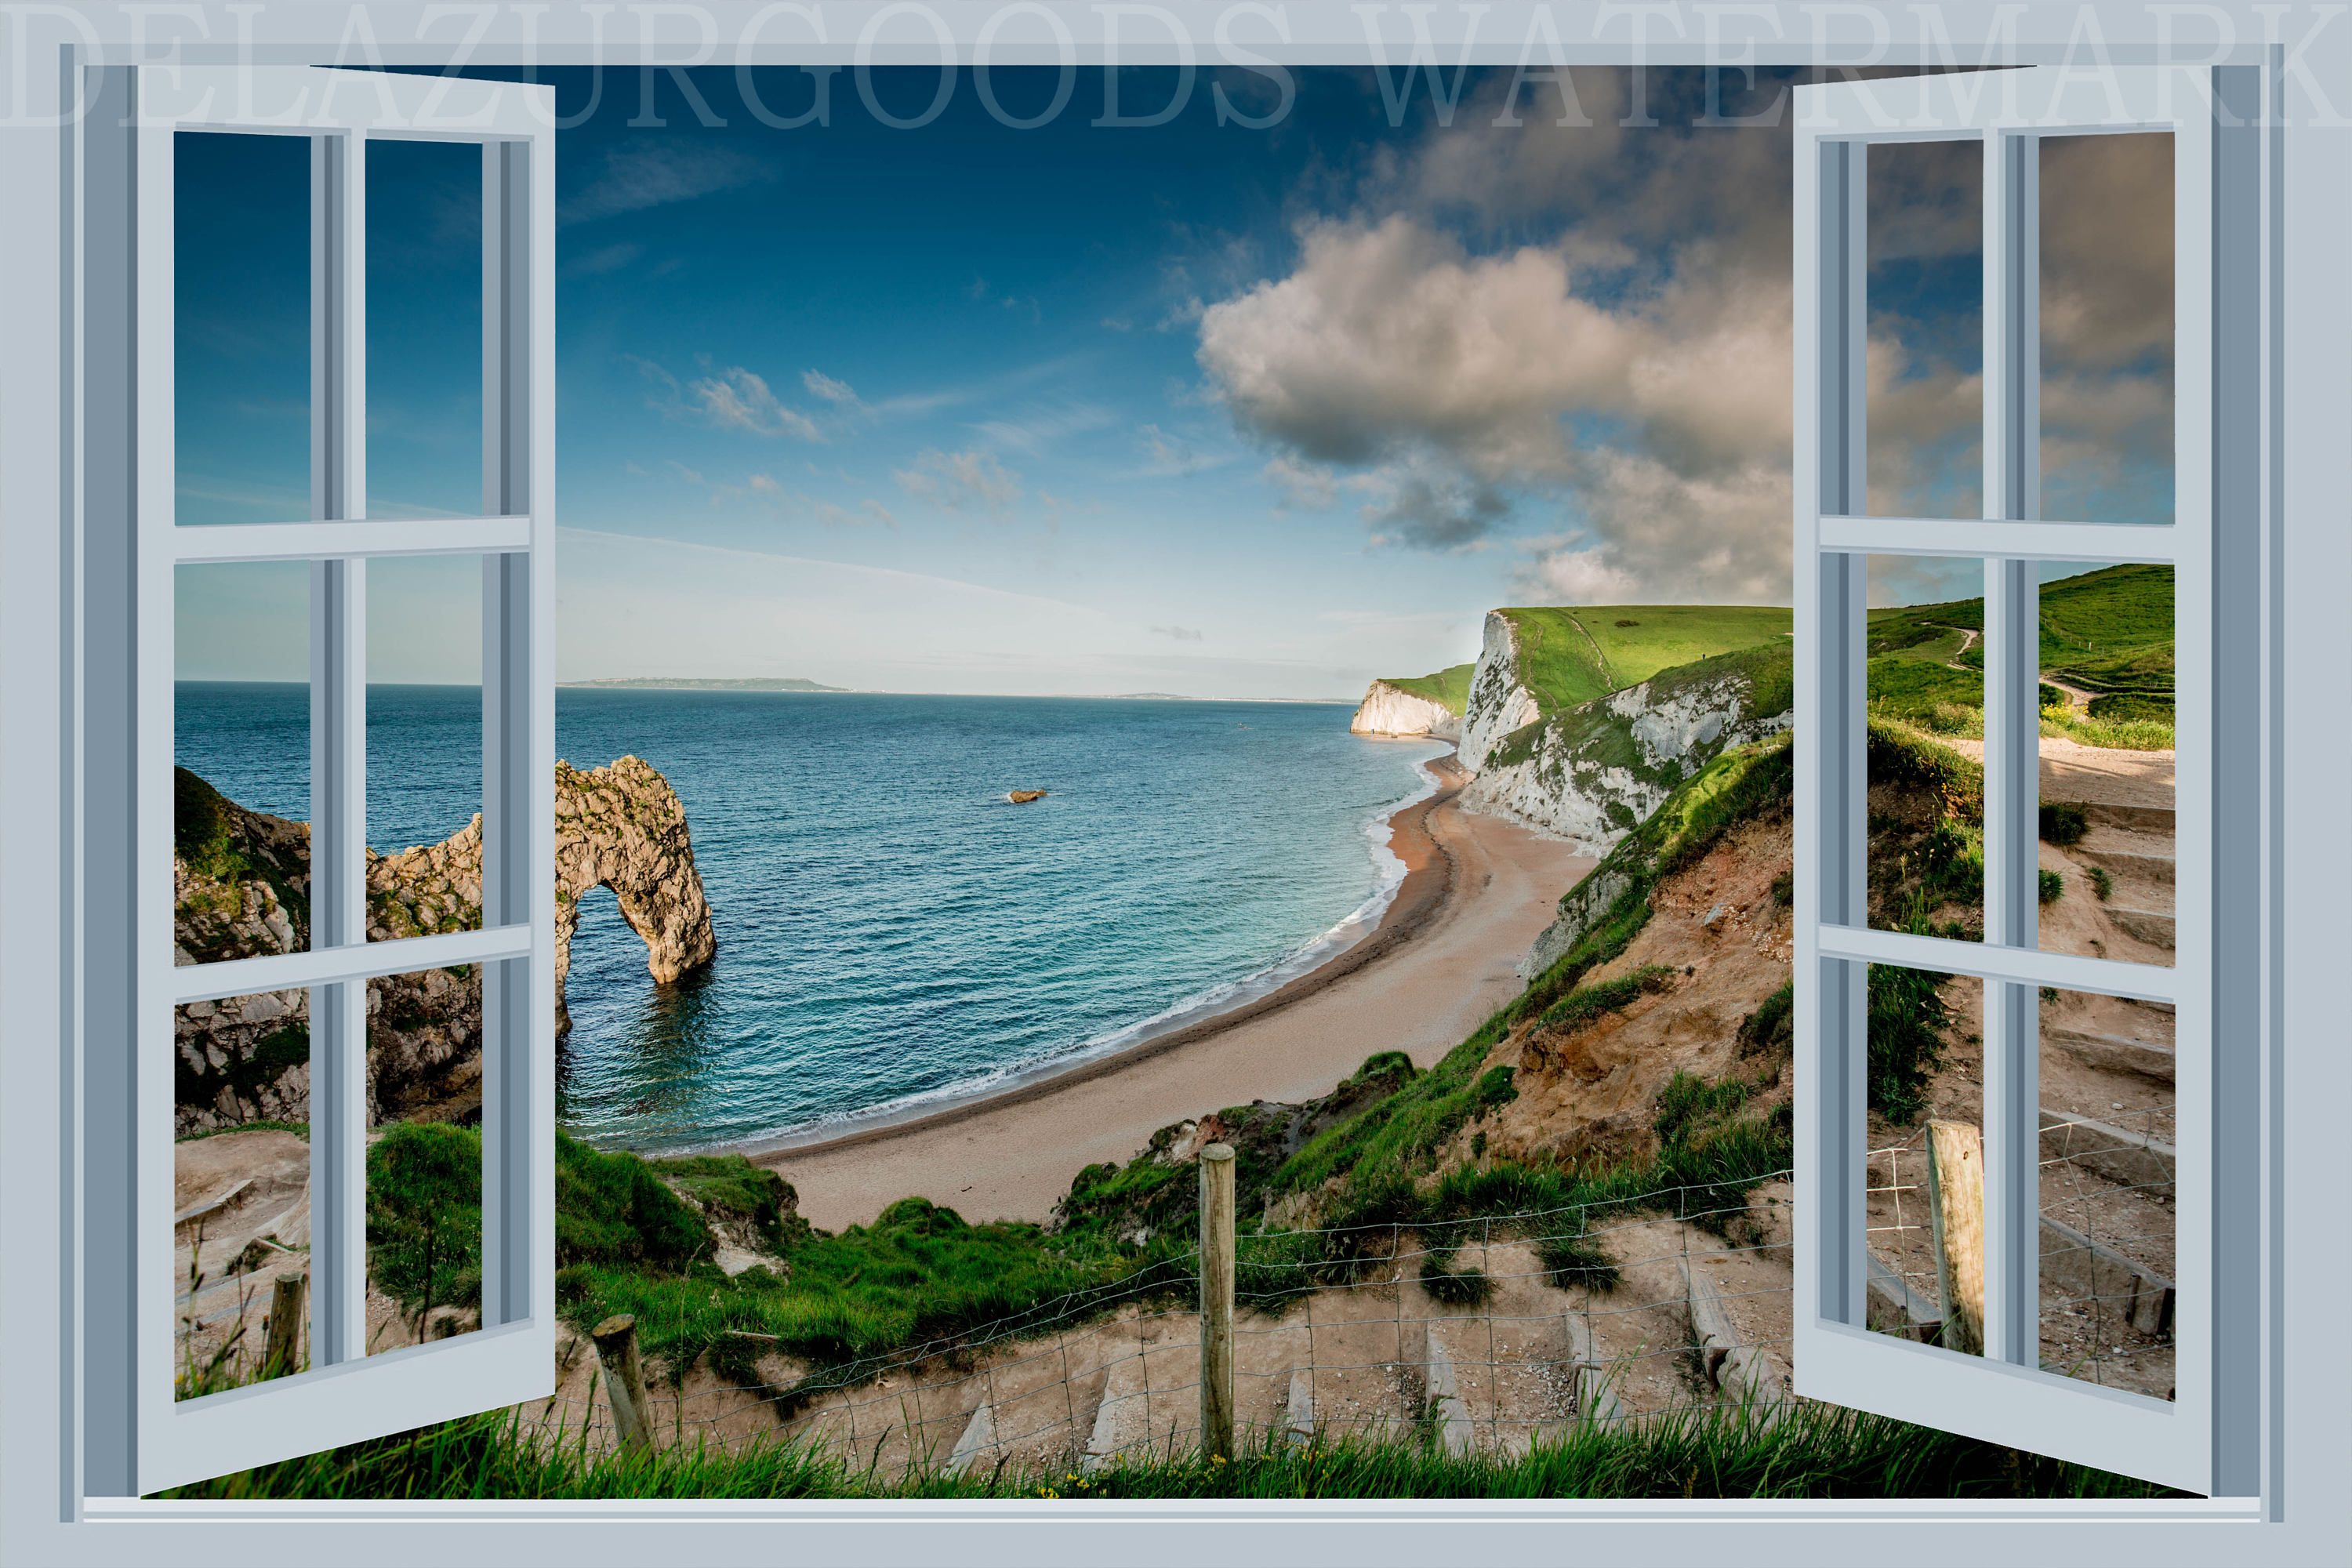 Beach House White Window View Wall Decal Removable Wallpaper Peel Stick High Quality Materials Diy By Delazur Window View View Wallpaper White Windows